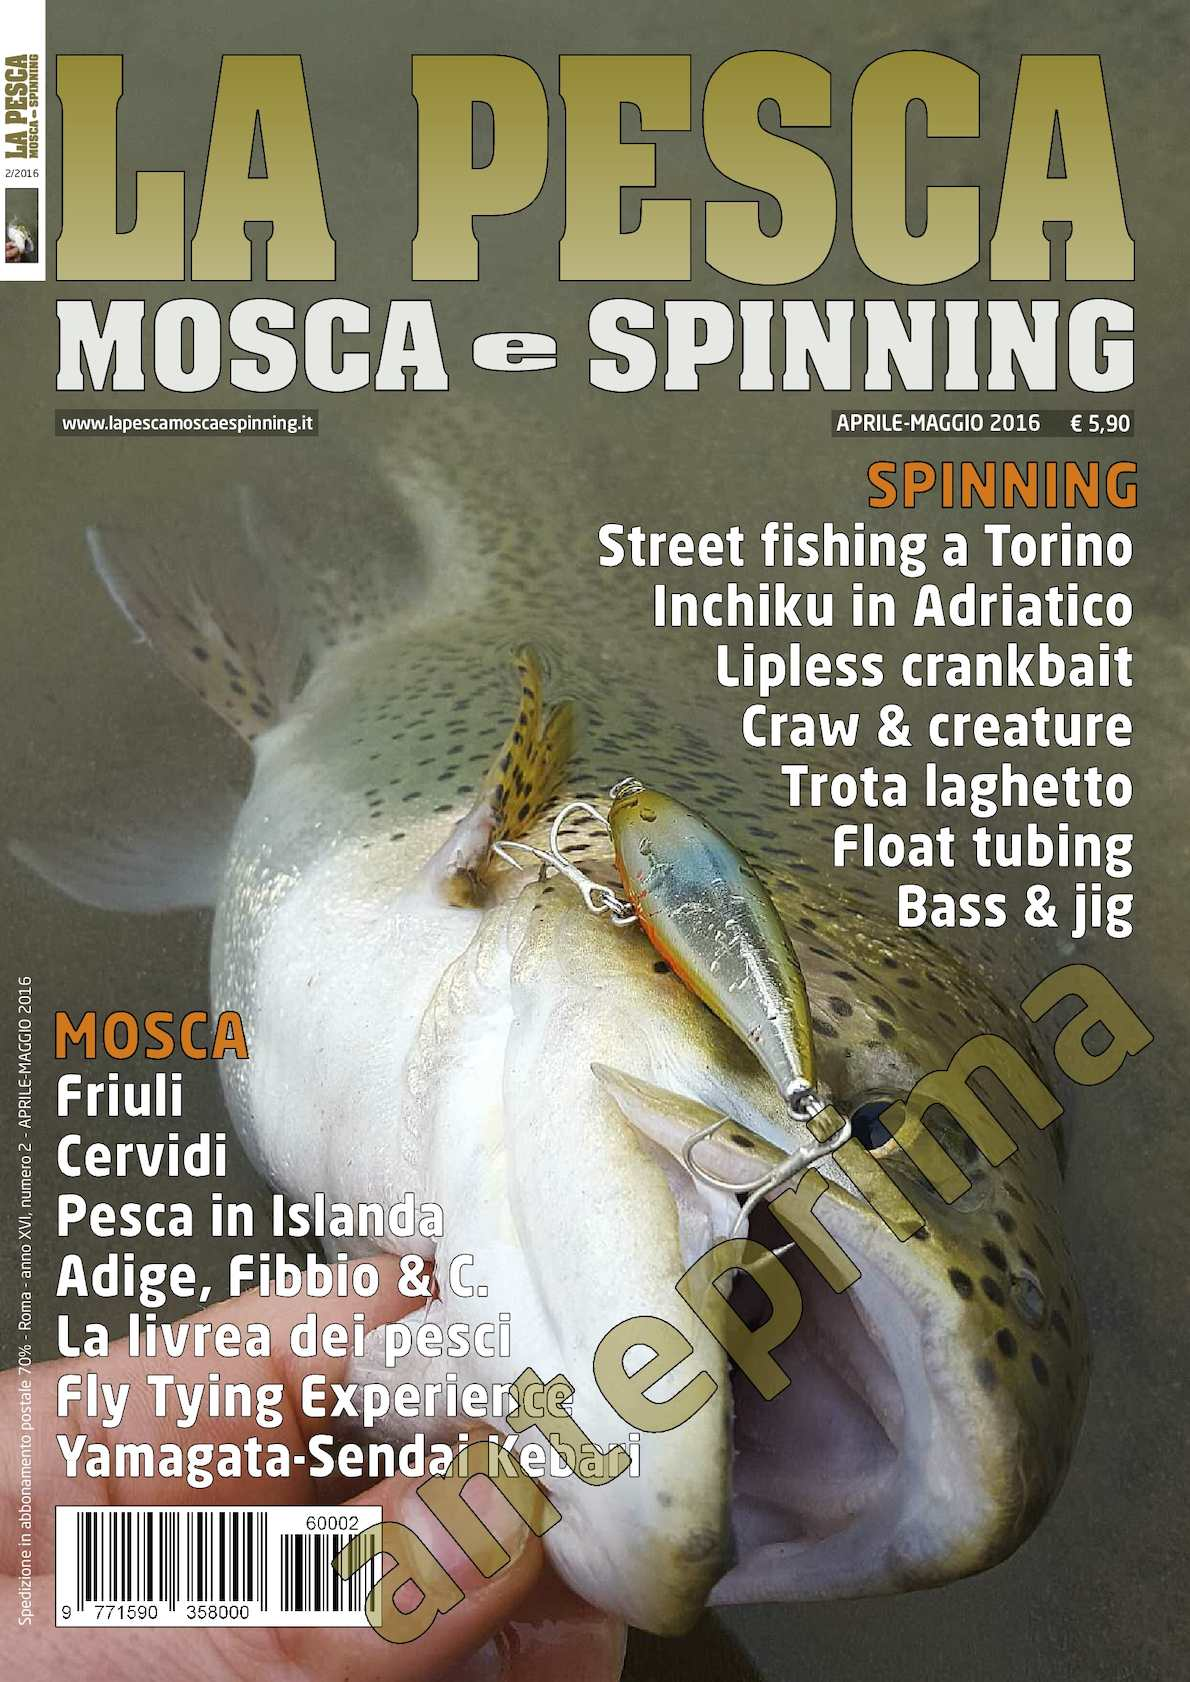 La Pesca Mosca e Spinning 2/2016 preview